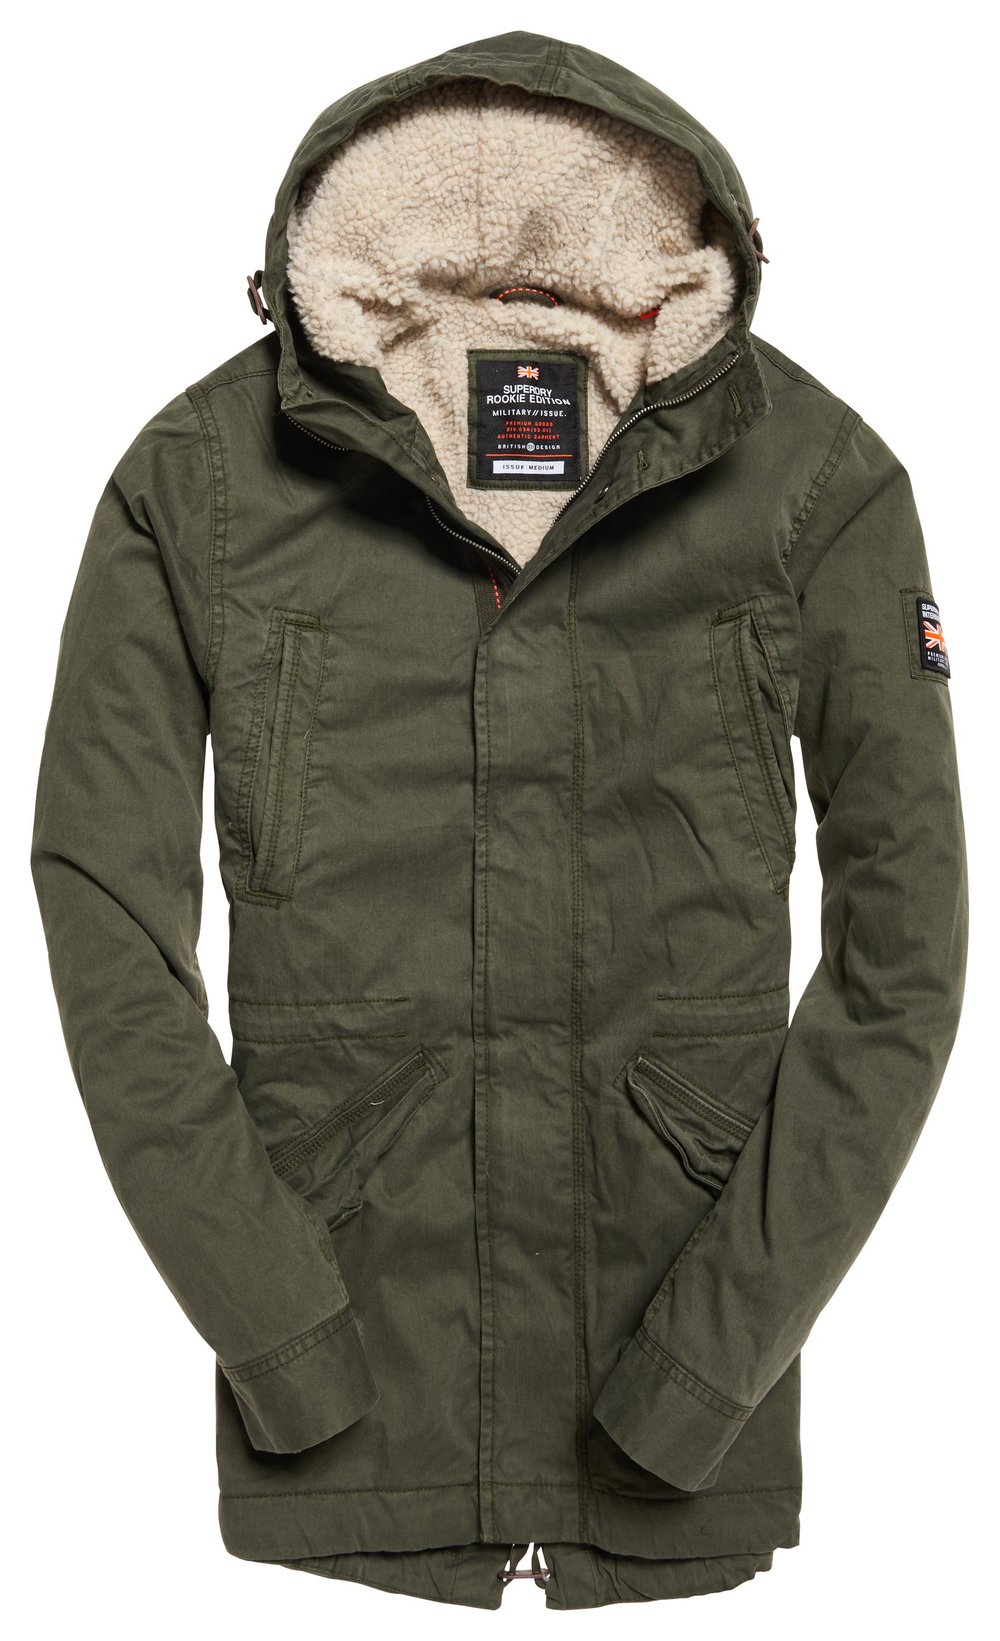 Superdry New Military Parka £99.99 www.superdry.com.jpg